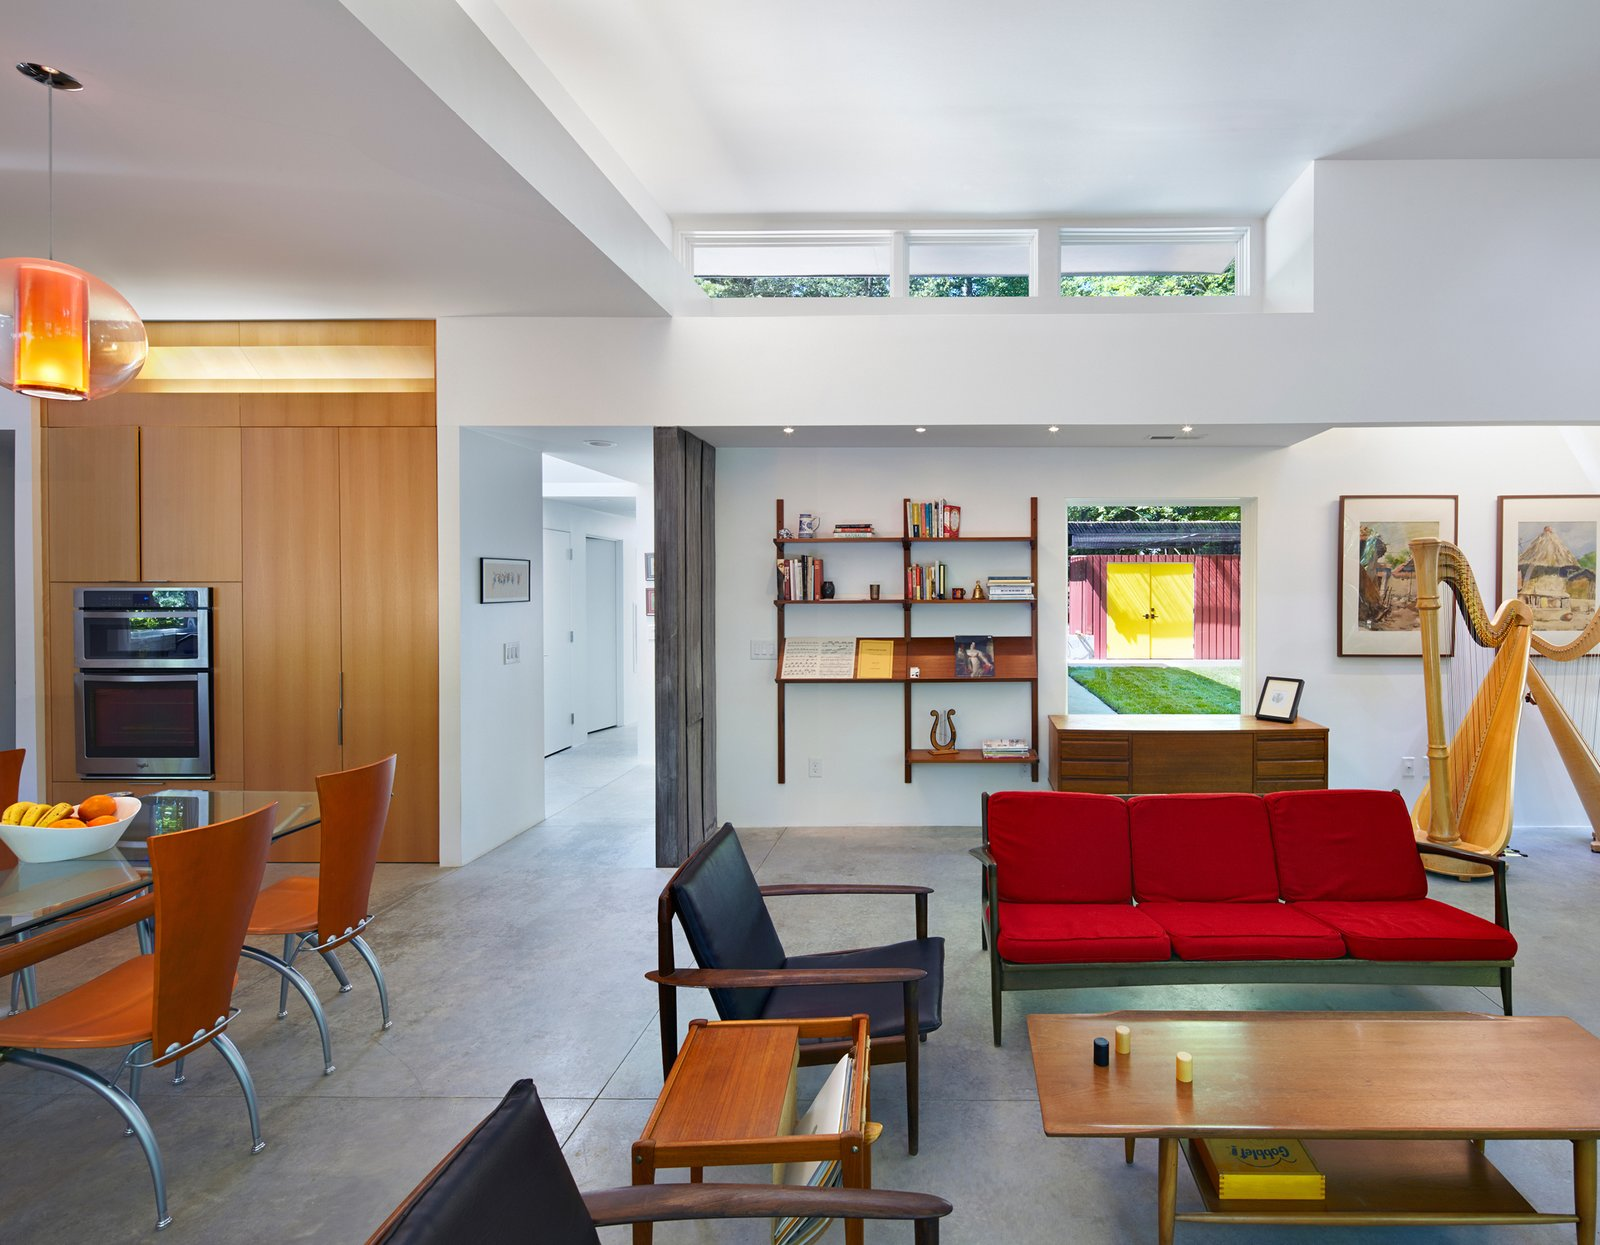 Living Room, Sofa, Chair, and Concrete Floor The Aiyyers' midcentury furniture collection adds personality and color to the open-plan interior. A sofa by Kofod-Larsen for Selig, chairs by Viko Baumritter, shelving by Regner Christensen, and a coffee table by a local craftsmen accentuate the living room, while a dining table and chairs by Calligaris, custom cabinetry with pulls by Mockett, and an overhead Bel Occhio light from Pablo Designs complete the kitchen. Leigh's harp, from Lyon & Healy, sits nearby.  Photo 5 of 8 in This Light-Filled, Metallic Home Embraces Its Wooded Site from This Light-Filled Metallic Home Embraces Its Wooded Site